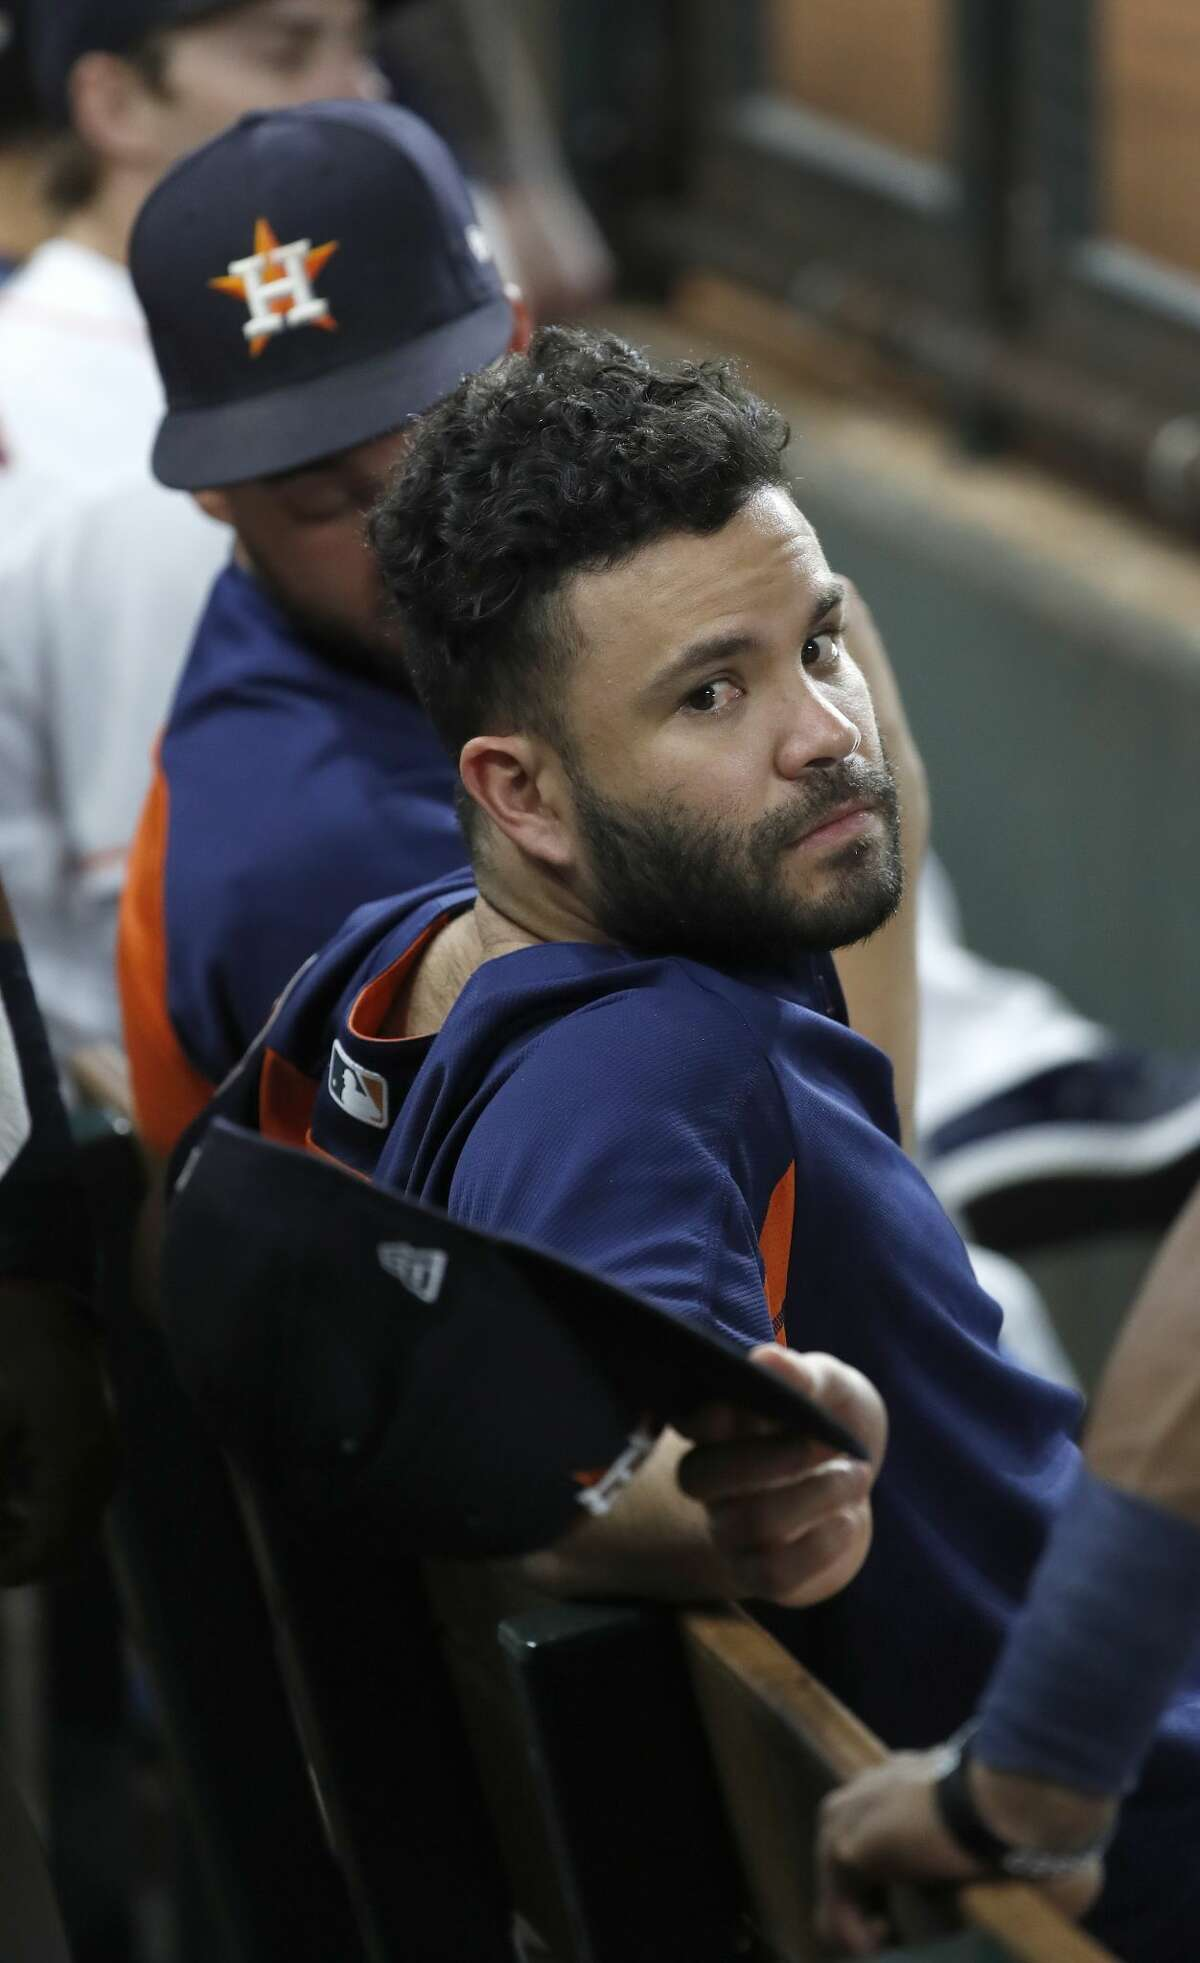 Houston Astros second baseman Jose Altuve in the dugout during the third inning of an MLB game at Minute Maid Park, Thursday, August 9, 2018, in Houston.